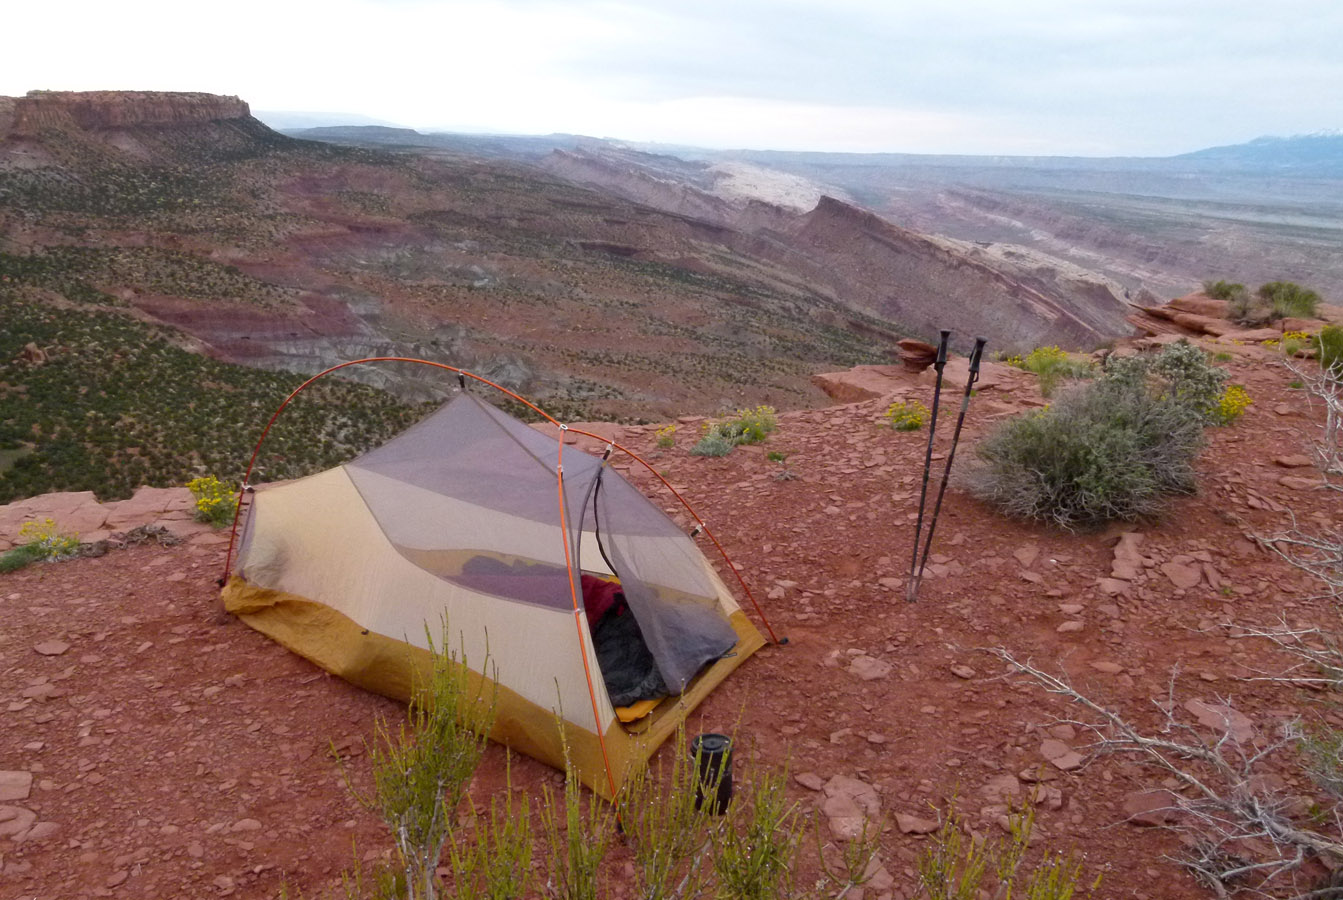 Camp Awesome at the edge of the Fold